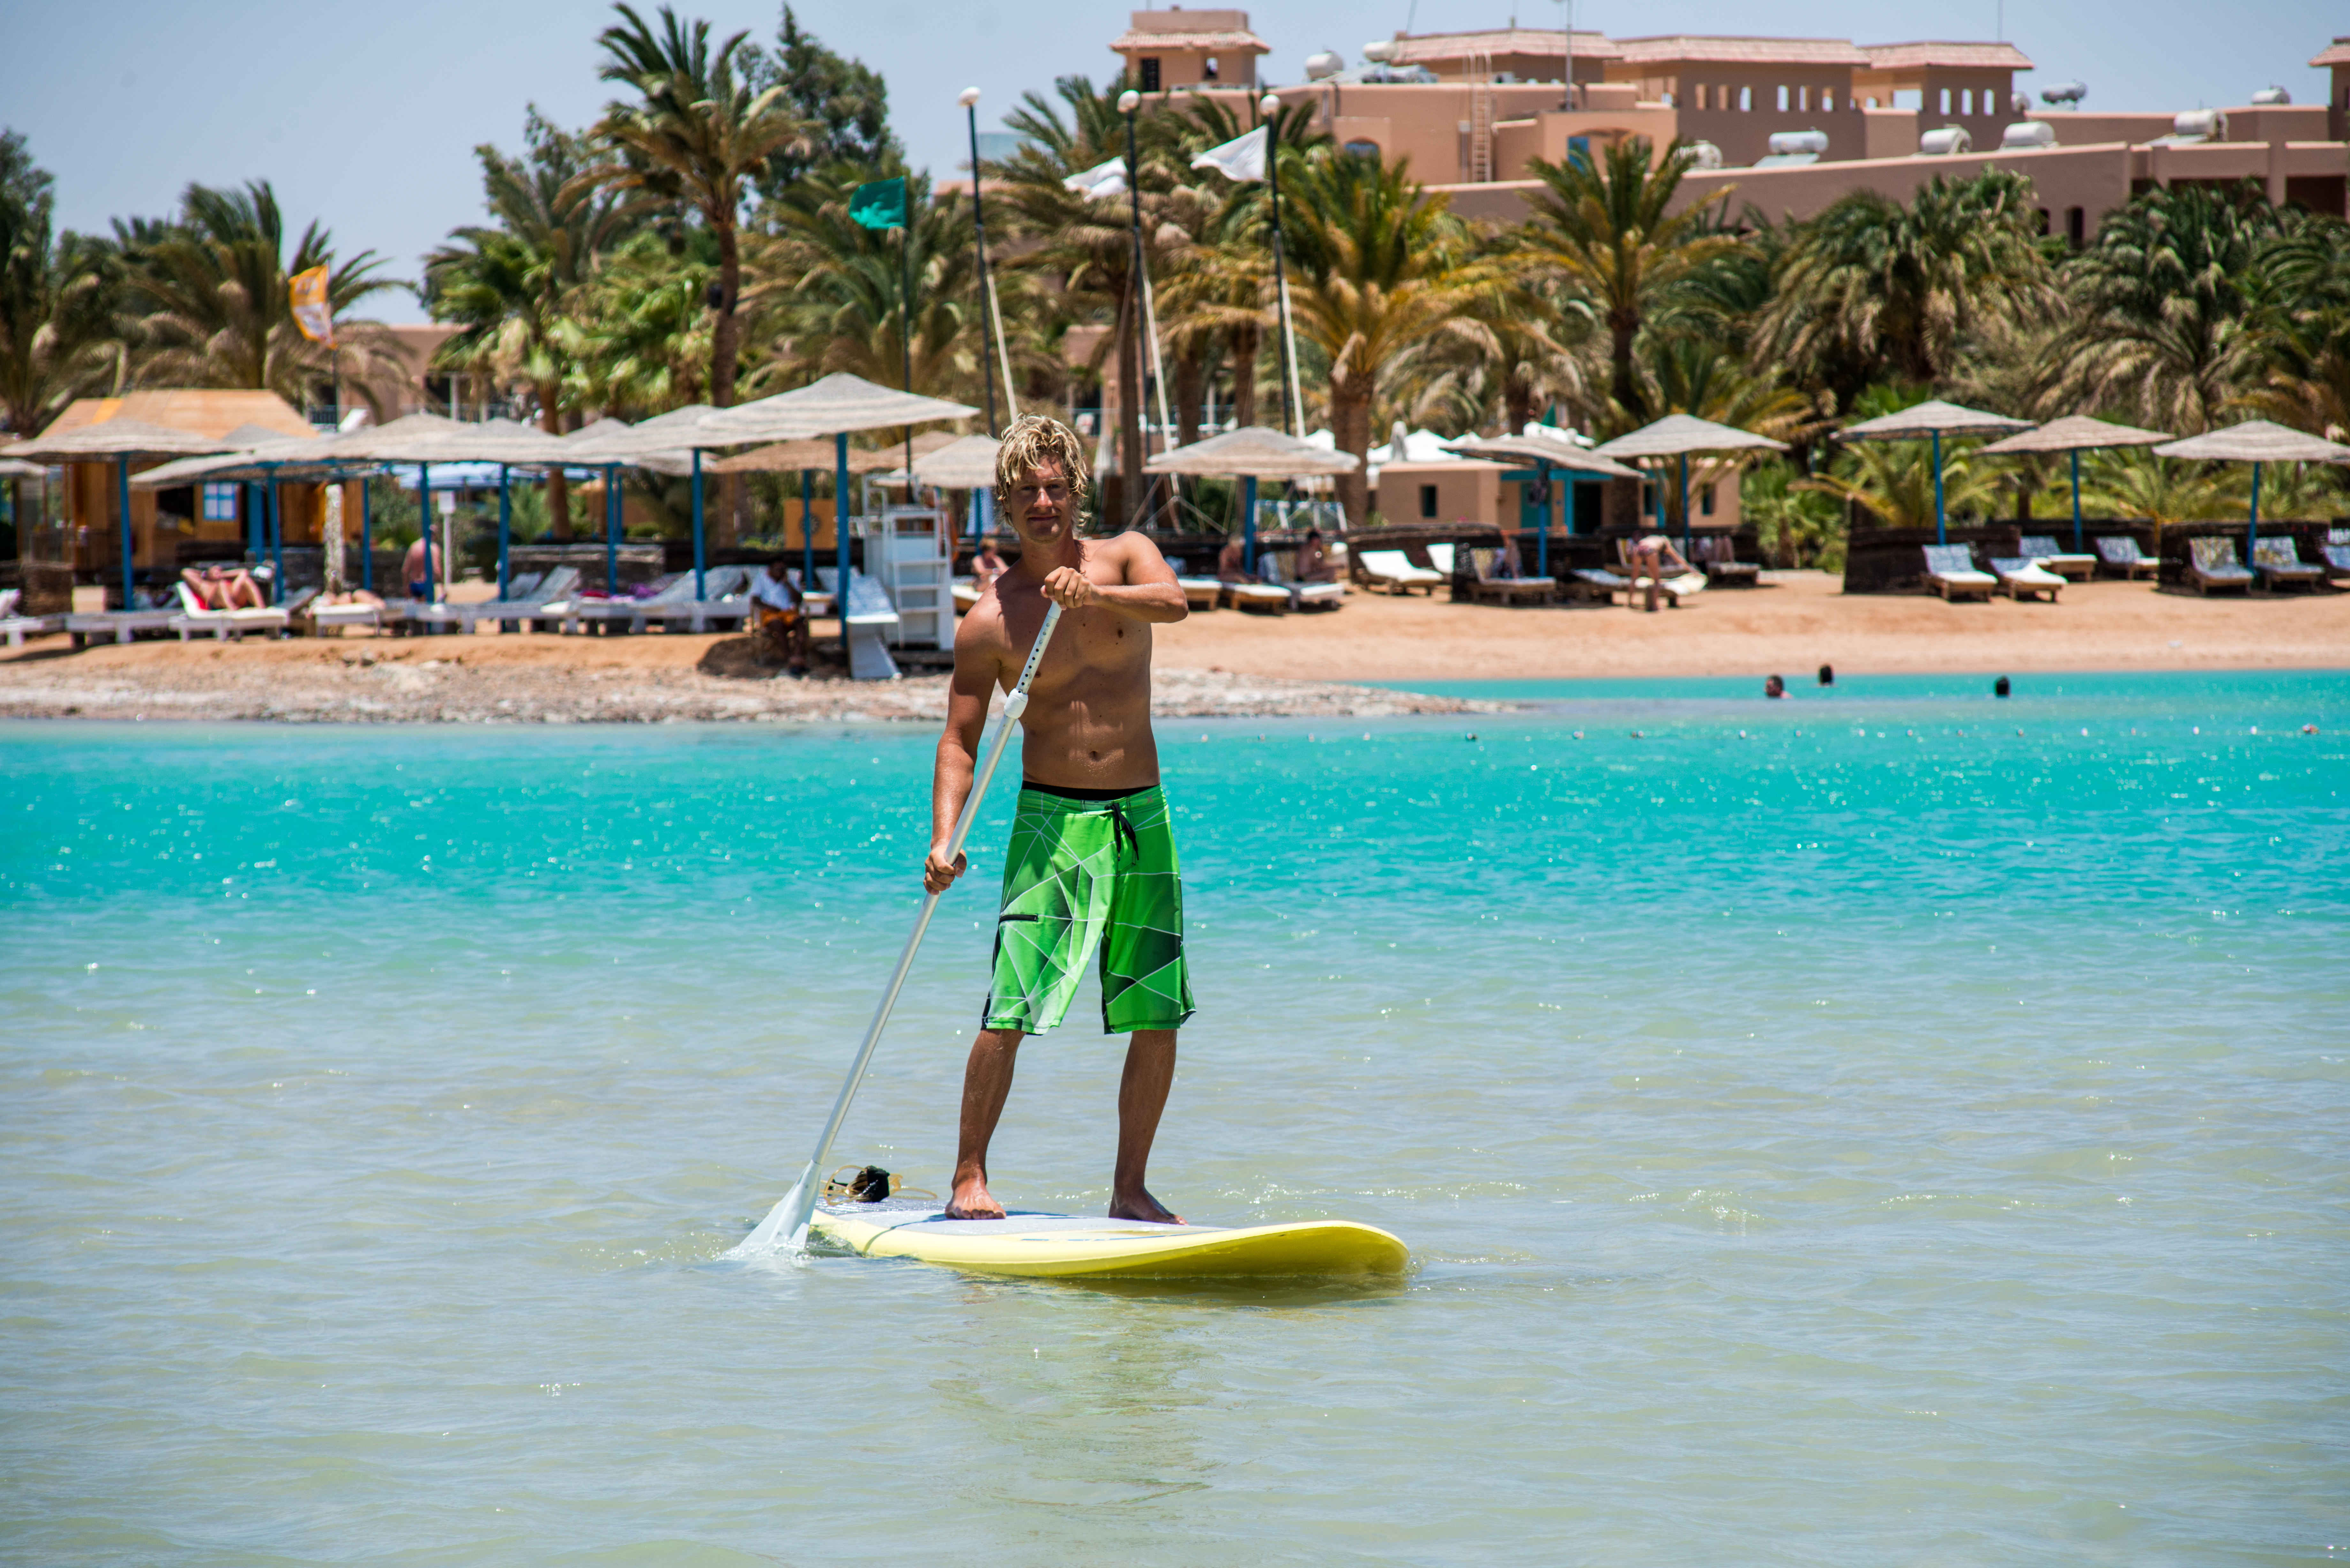 A guy is stand up paddling in Labranda Club Paradisio Hotel in Red Sea El Gouna